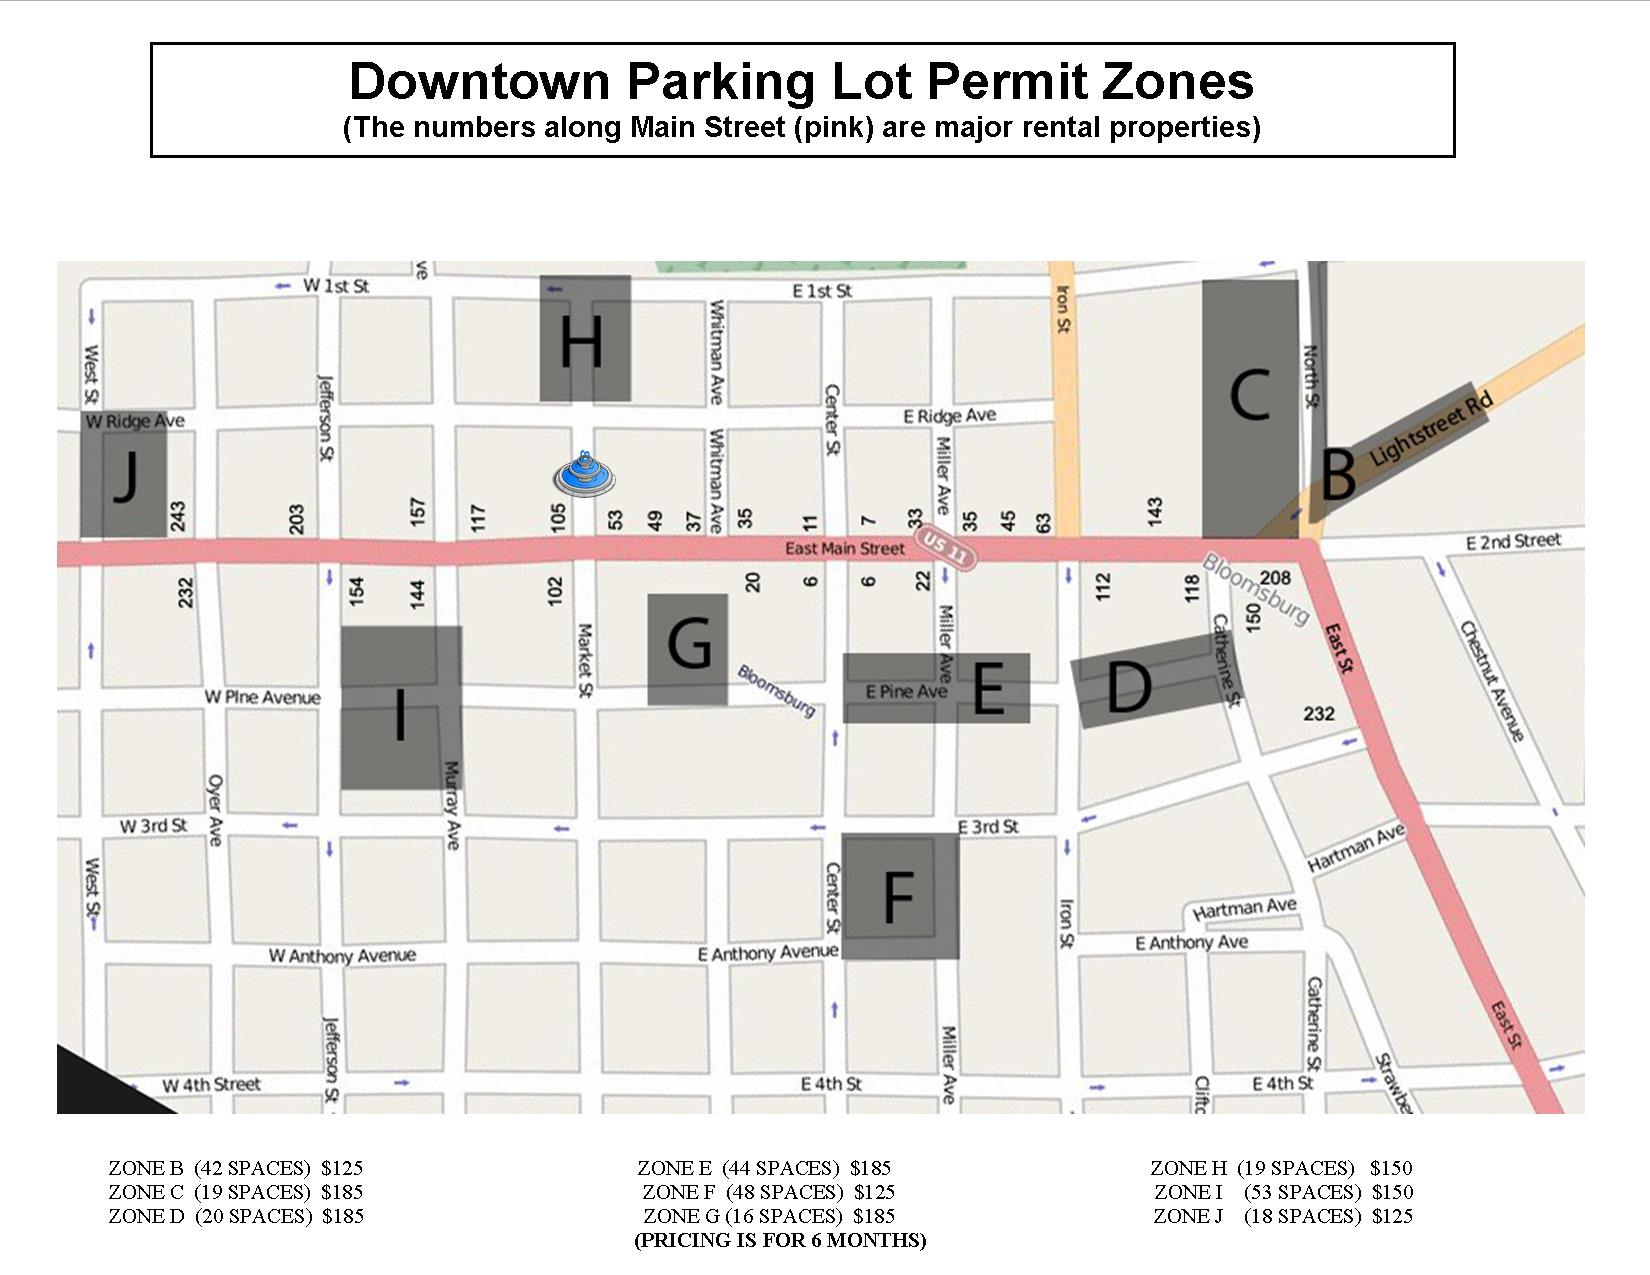 PARKING LOT PERMIT ZONES MAP APRIL 2017